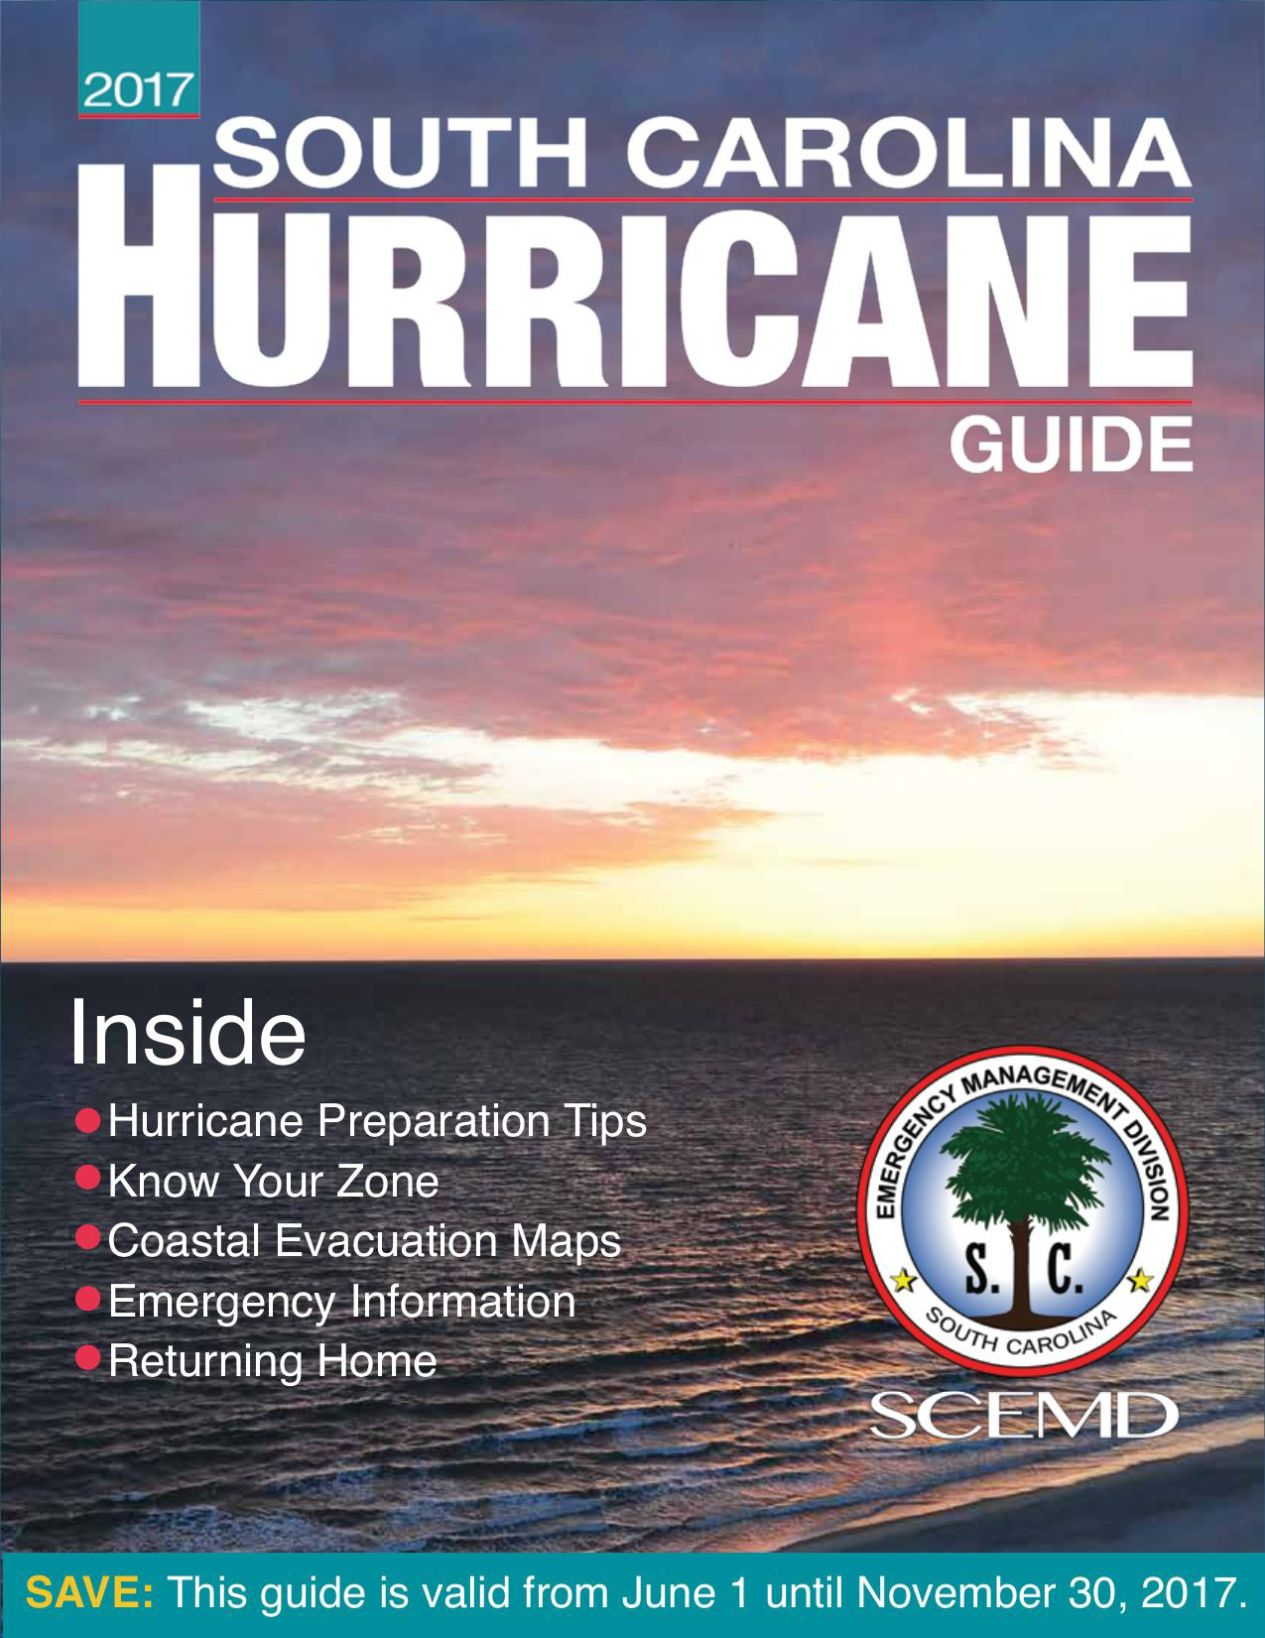 South Carolina Hurricane Guide Emergency preparedness checklist